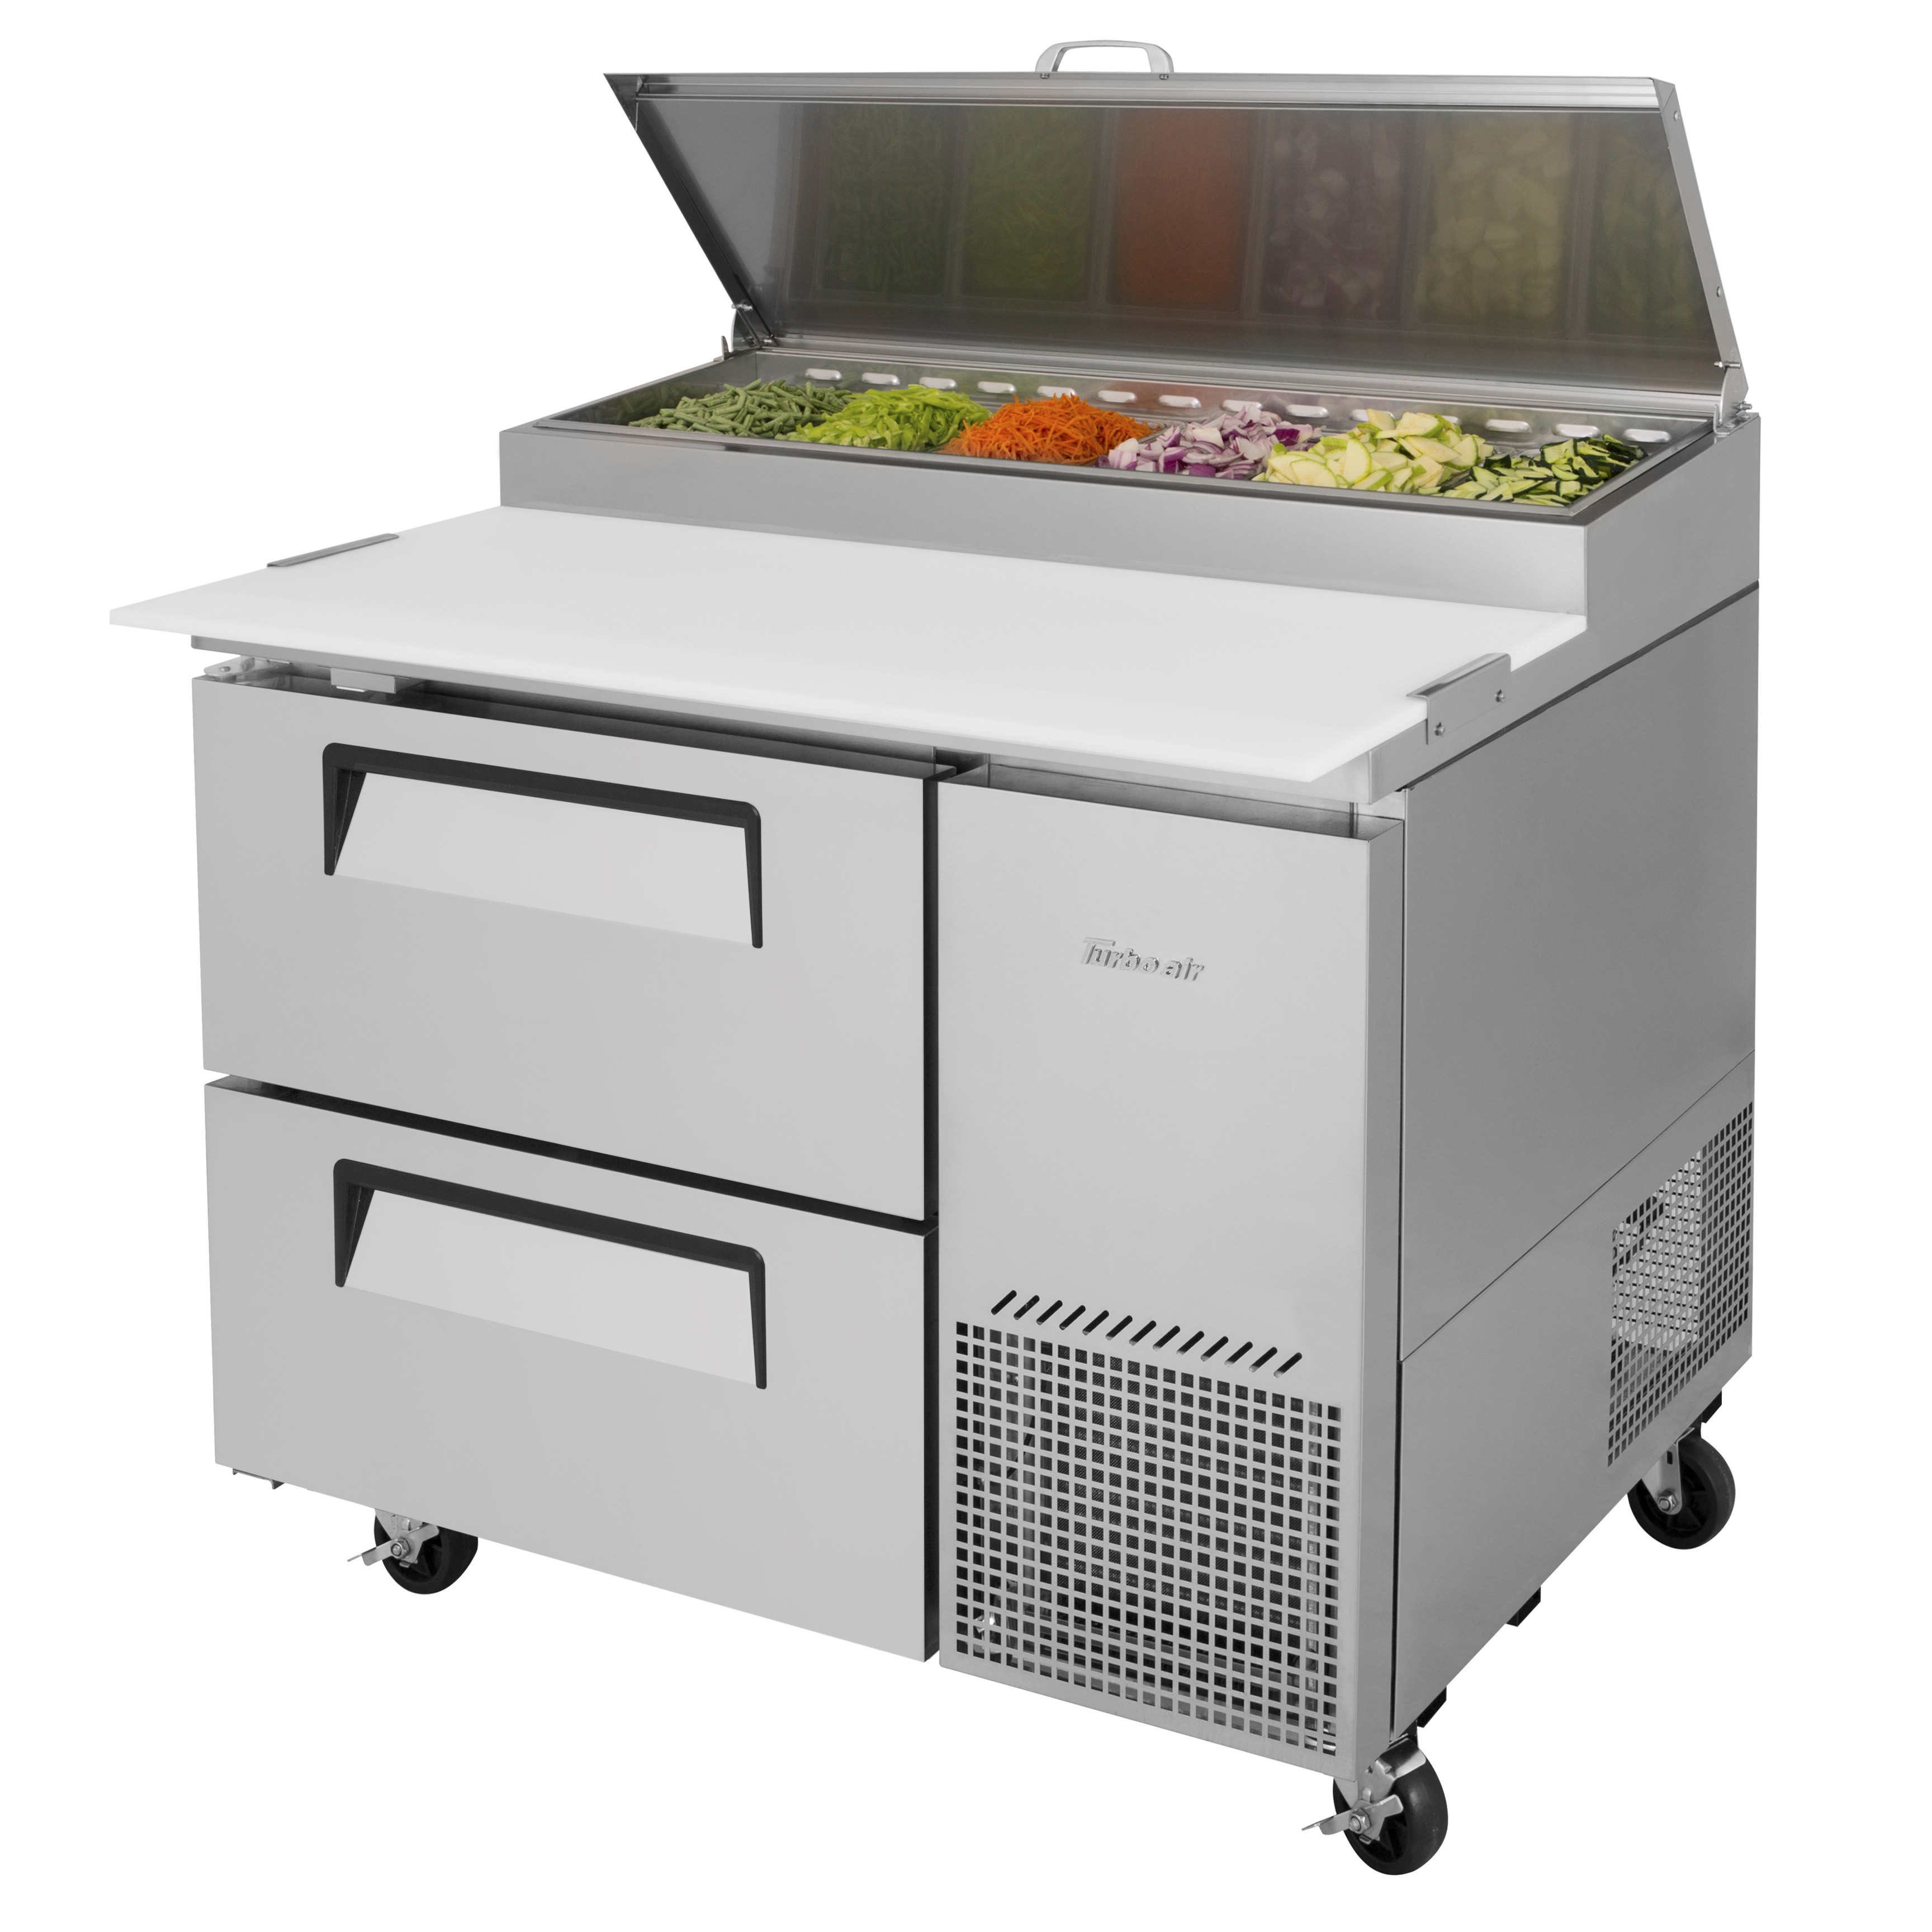 Turbo Air TPR-44SD-D2-N refrigerated counter, pizza prep table